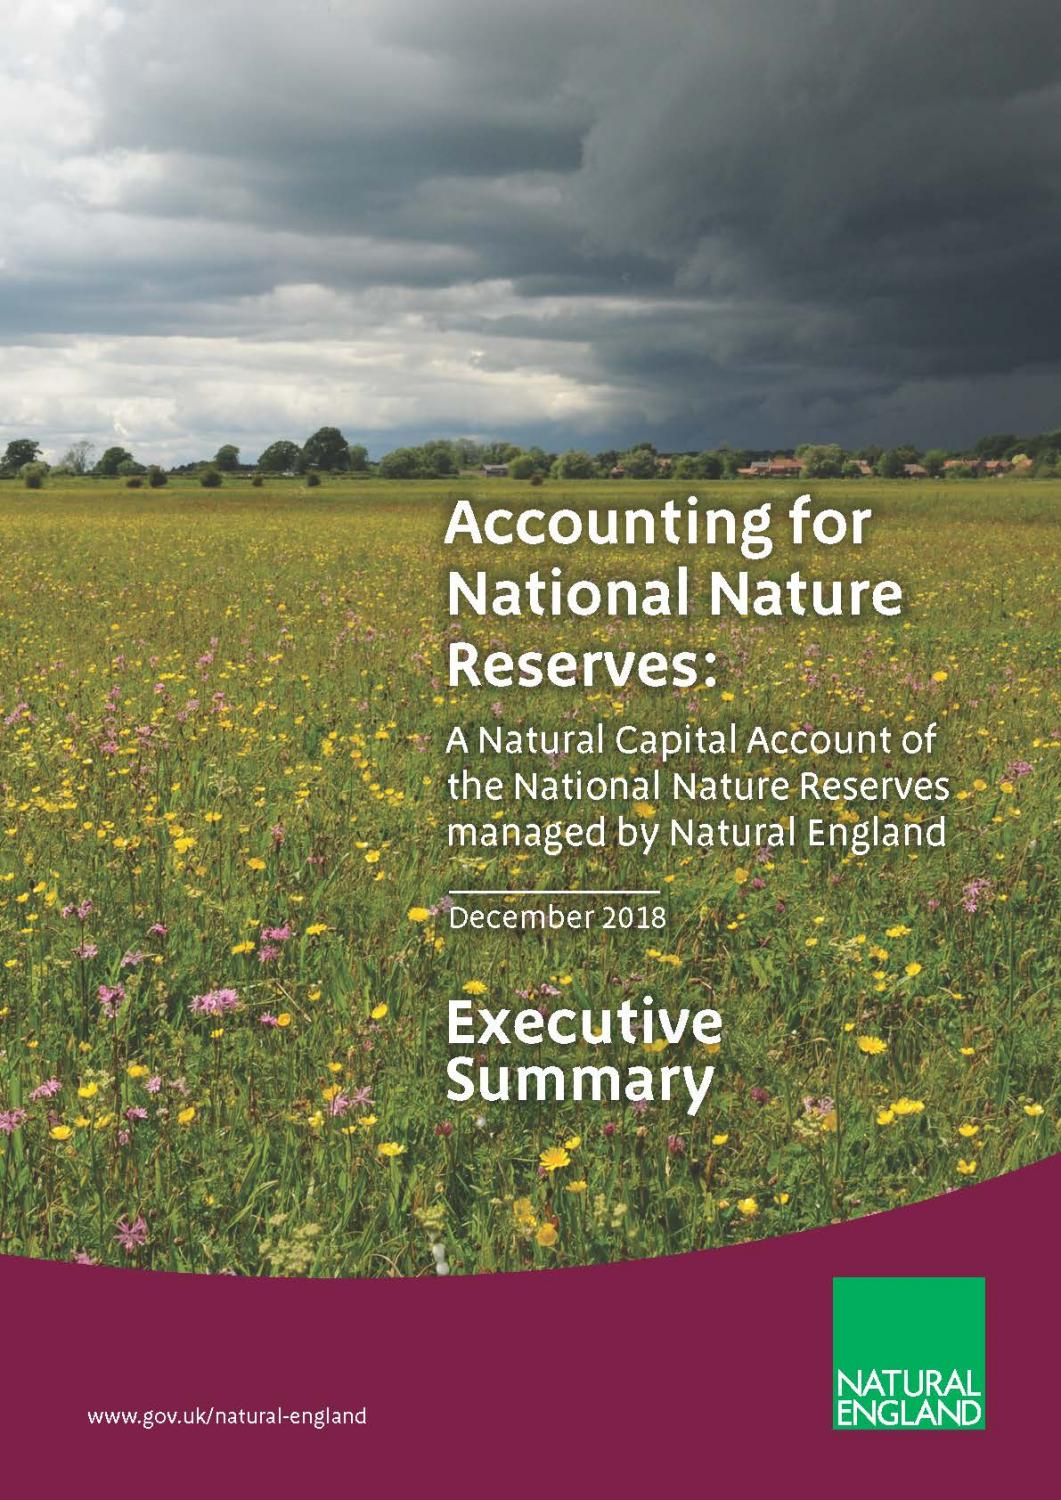 A Natural Capital Account of the National Nature Reserves managed by Natural England. Executive summary.